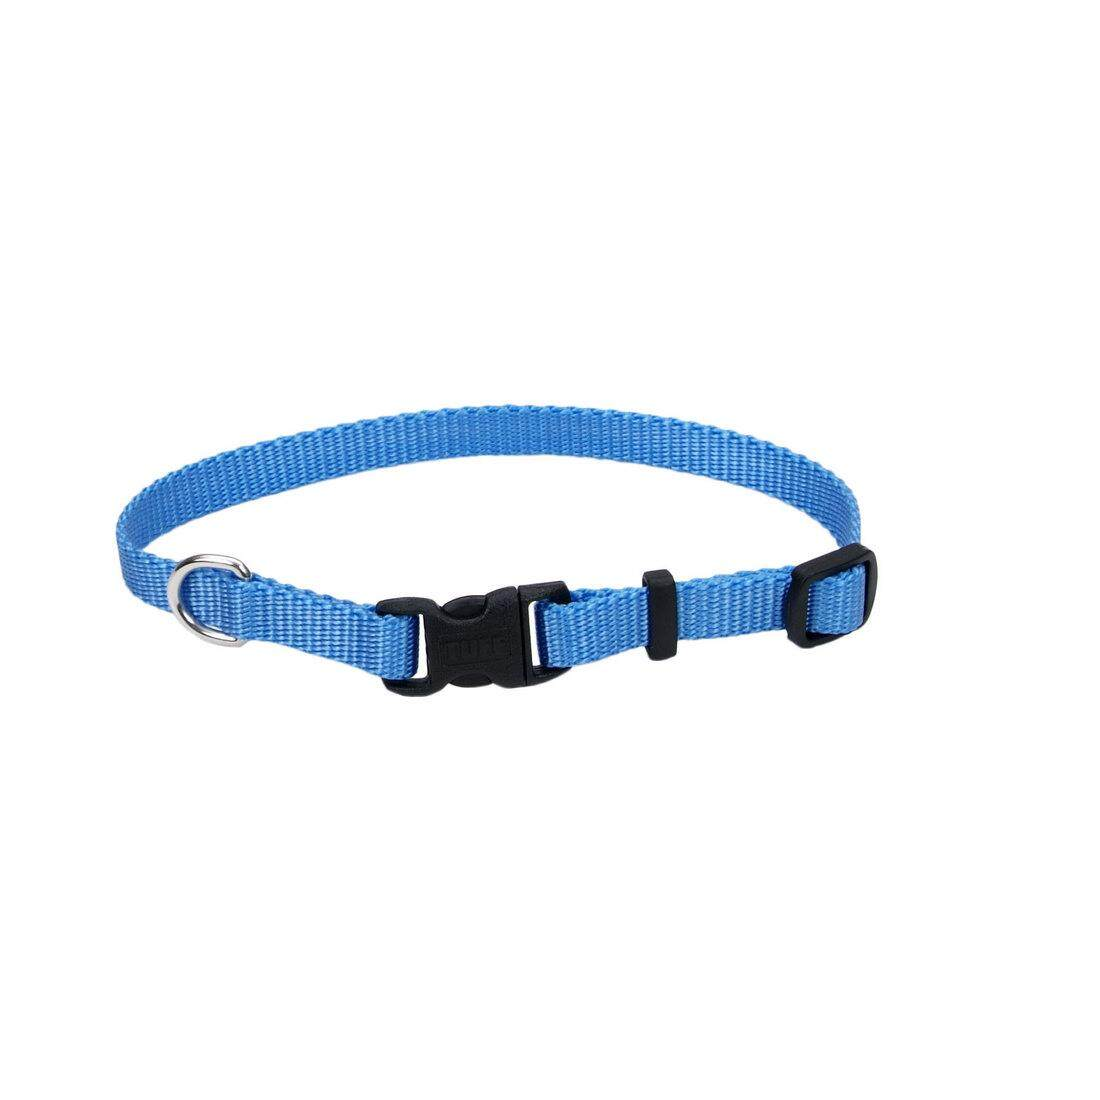 "[Coastal] Adjustable Nylon Dog Collar with Plastic Buckle 5/8"" S - Blue Lagoon"